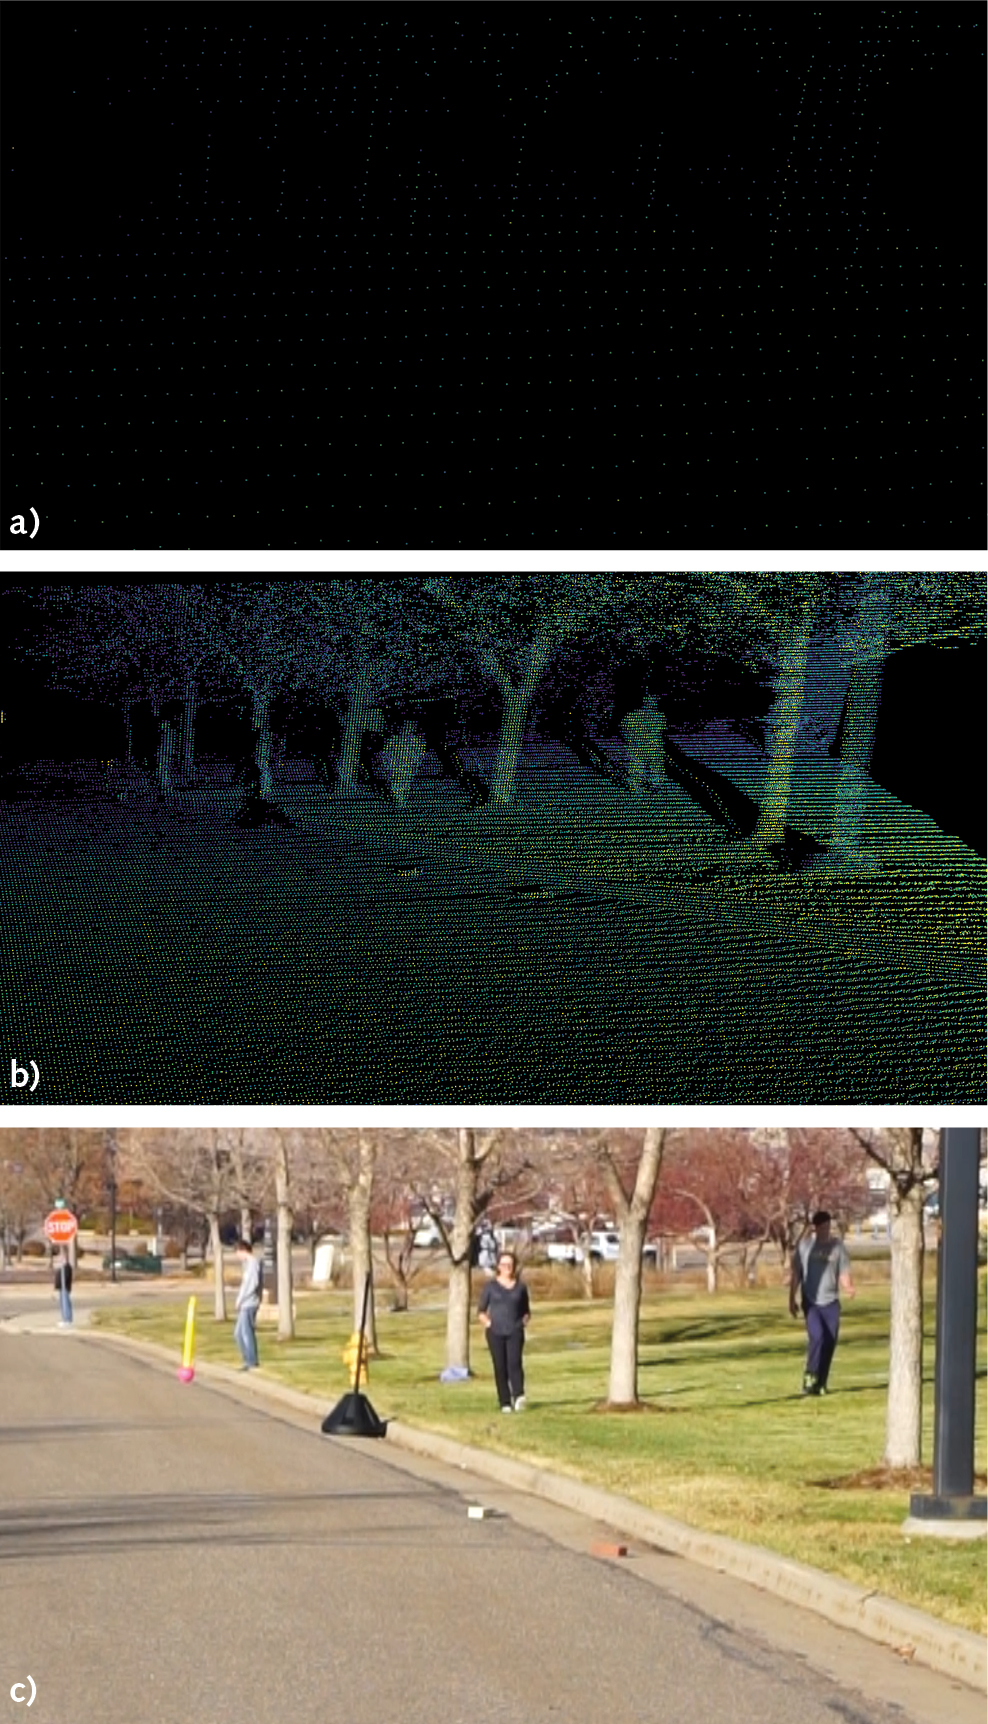 FIGURE 3. Traditional lidar with low resolution (0.2° × 0.2°) is shown (a), with objects difficult to distinguish. Insight's ultrahigh-resolution (0.025° × 0.025°) lidar is also shown (b), with bricks in the road and pedestrians clearly visible. A camera image of the scene is shown in (c).